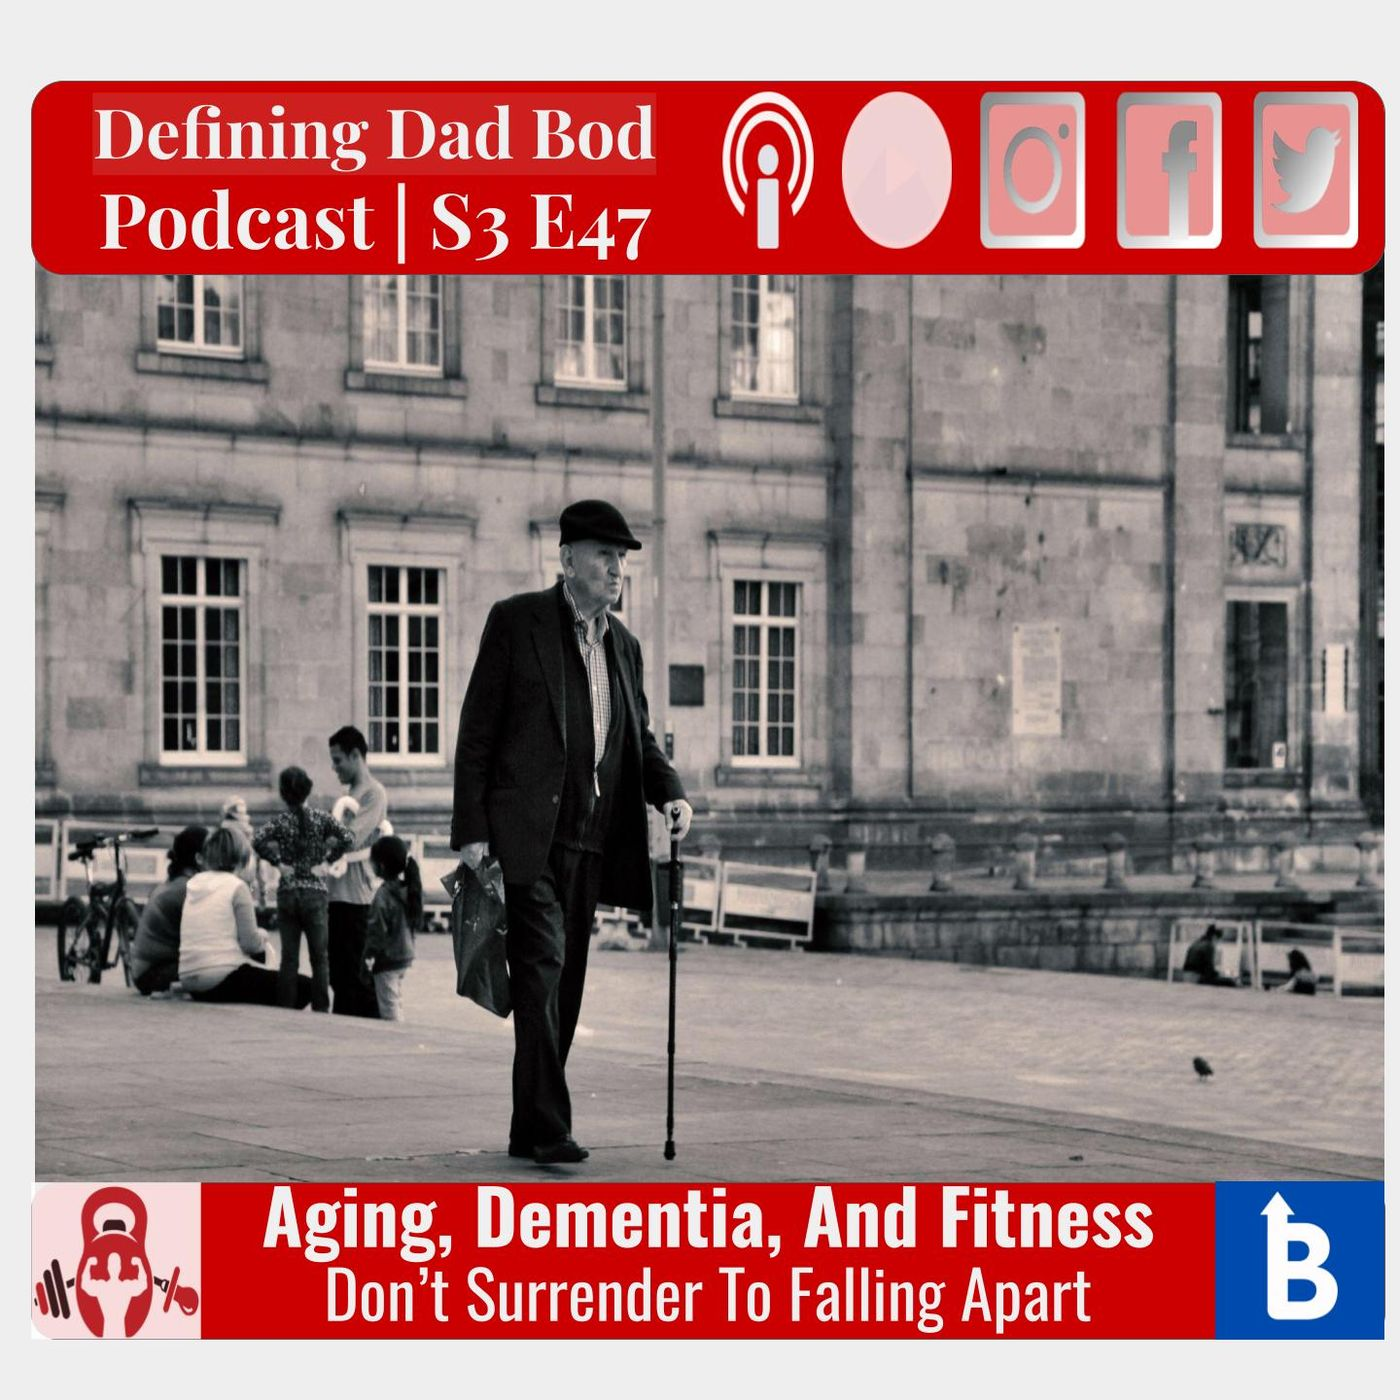 S3 E47 - Aging Dementia and Fitness